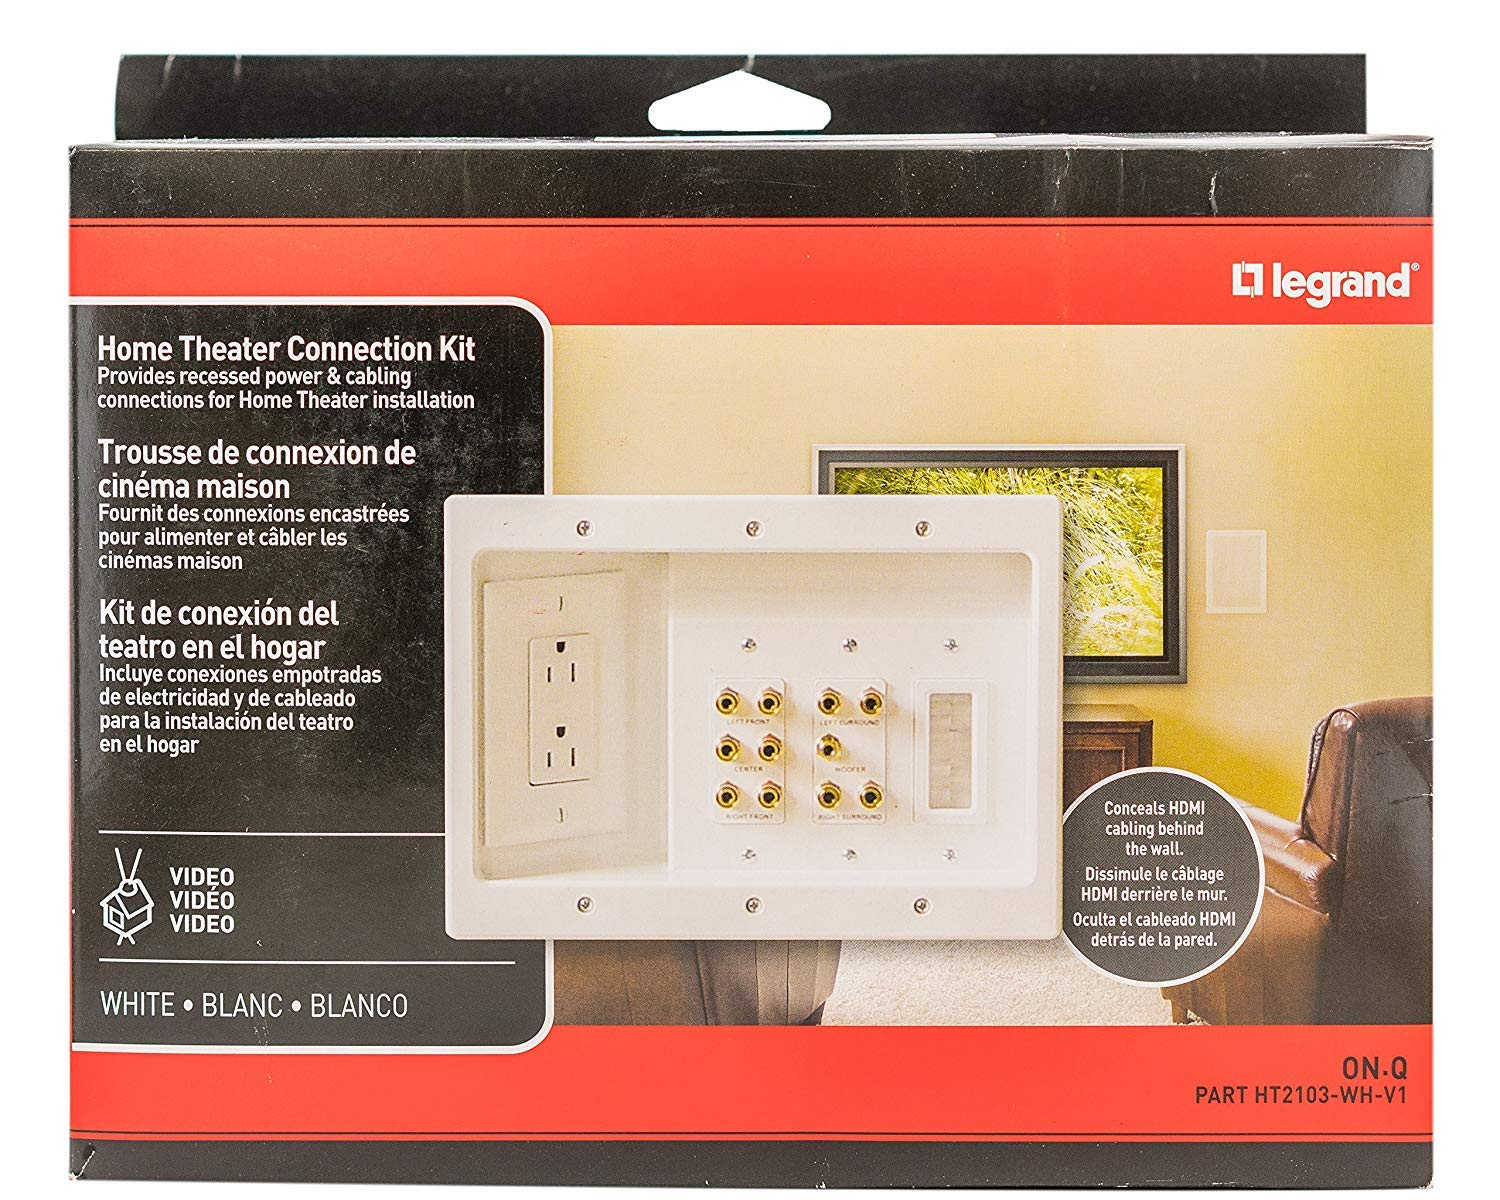 Amazon.com: Legrand - ONQ / Legrand HT2103WHV1 Home Theater Connection Kit: Home Improvement